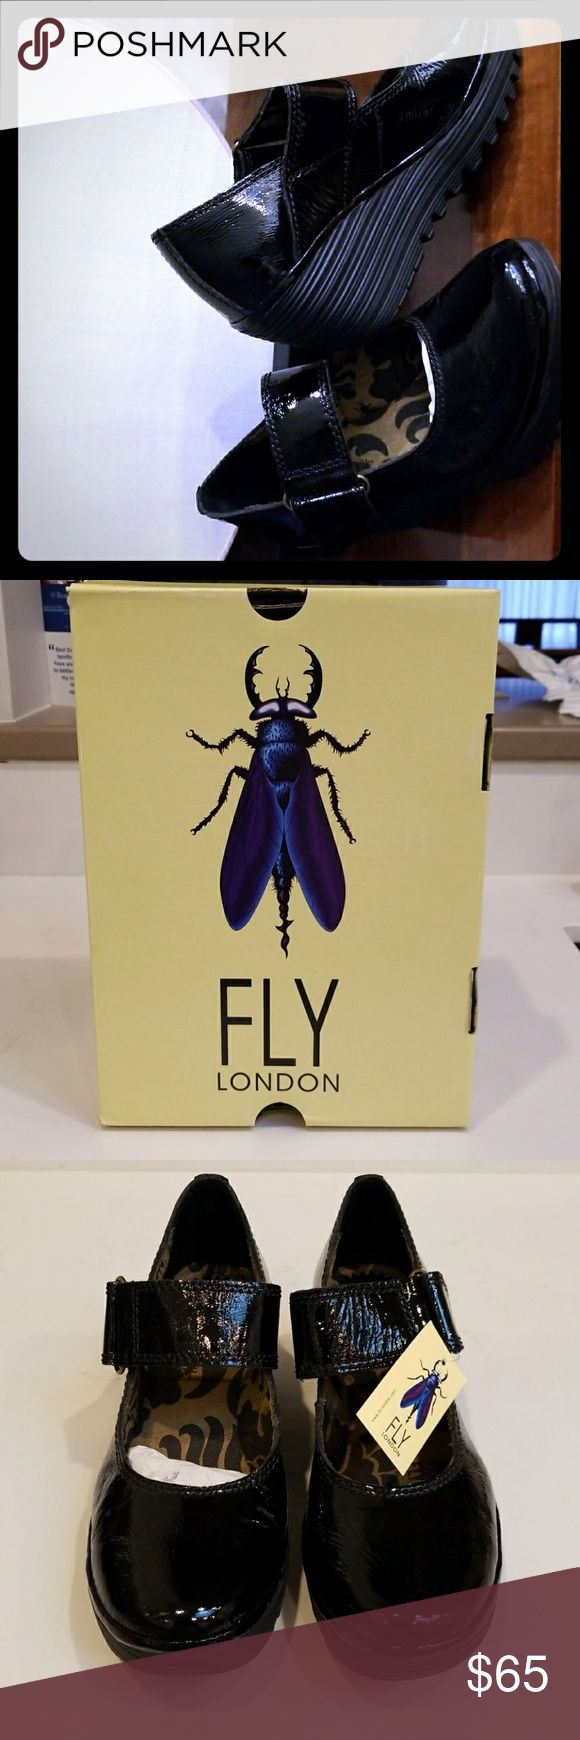 Fly London Wedged Mary Jane shoes UK-based Fly London Yag black leather patent Mary Janes man, made in Portugal, will enhance a closet that has an edgy yet on-point current style platform. 2 1/4 wedge heel will help elevate any whimsical cute outfit. Never worn with original tag and packaging.. Fly London Shoes Wedges